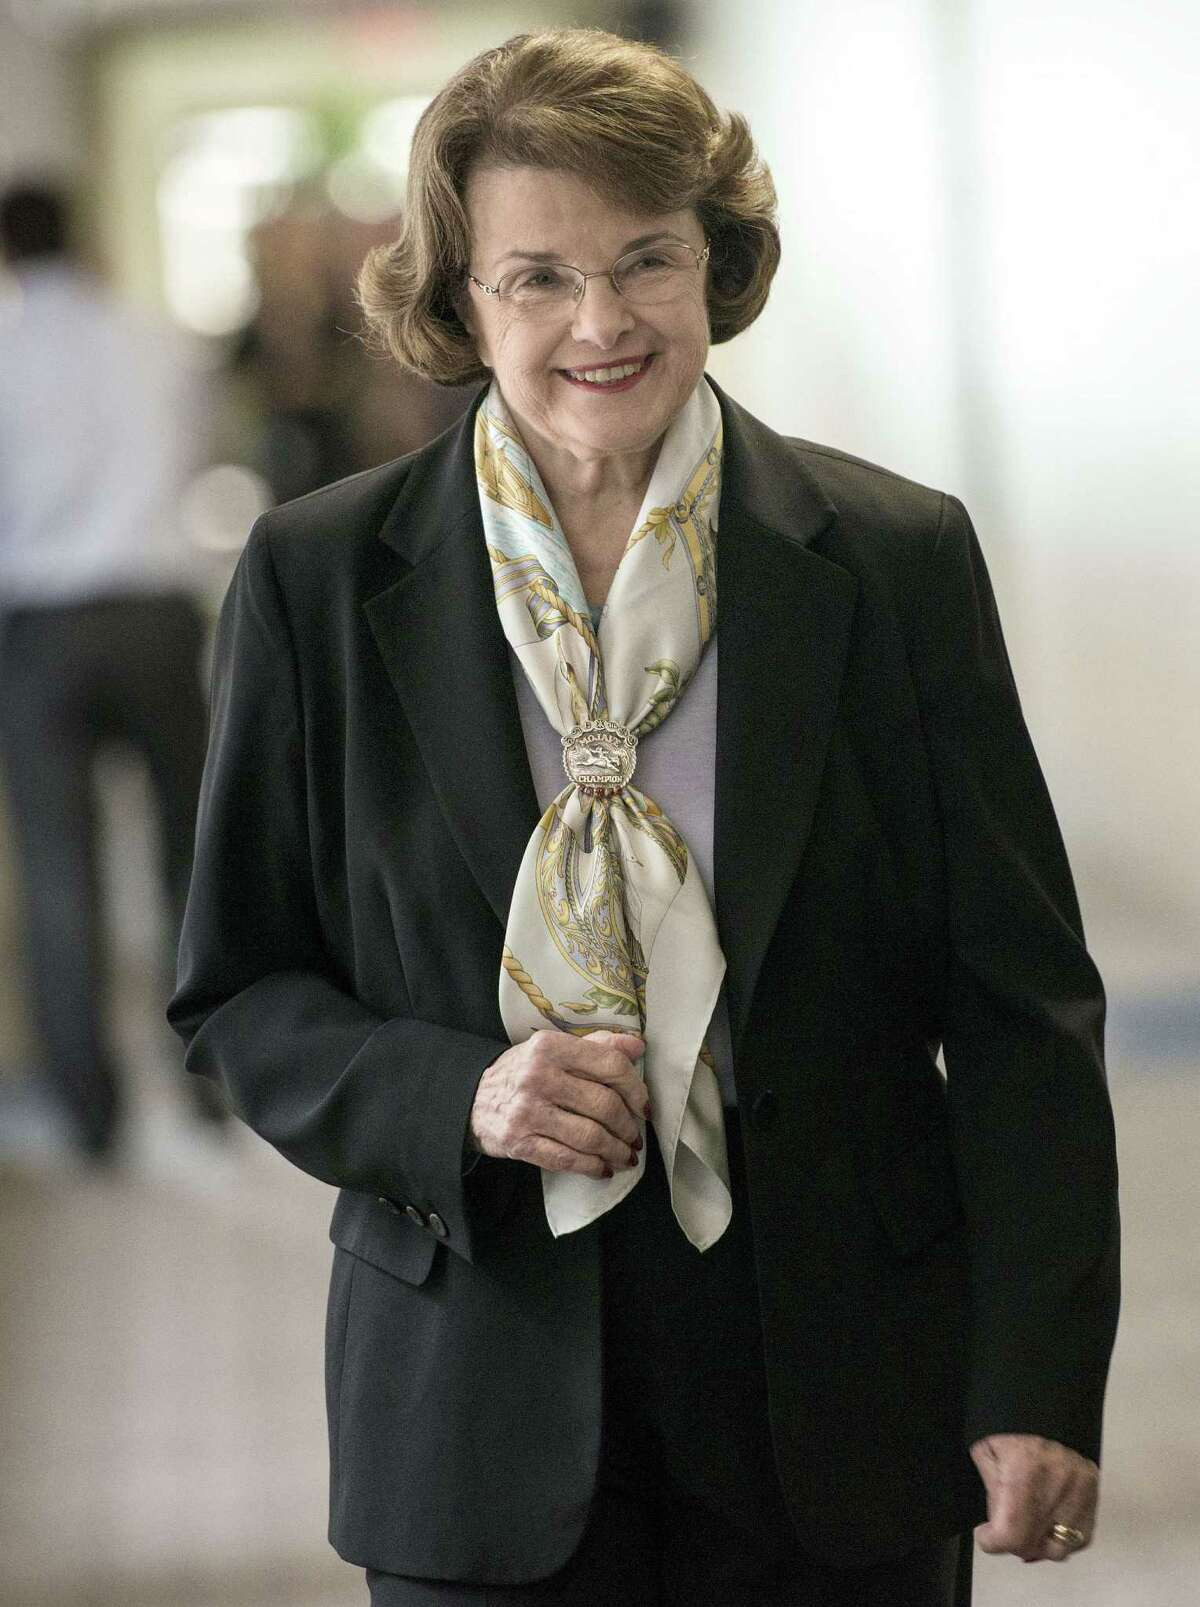 (FILES) This April 3, 2014 file photo shows Senator Dianne Feinstein D-CA as she walks to a closed meeting of the Senate Intelligence Committee on Capitol Hill in Washington, DC. The lawmaker behind the explosive US Senate report on enhanced interrogation techniques presented several torture prevention proposals on January 5, 2015 to President Barack Obama including a ban on the CIA holding detainees. Senator Dianne Feinstein said she would introduce legislation early in the congressional session, which begins January 6, 2014, that would close